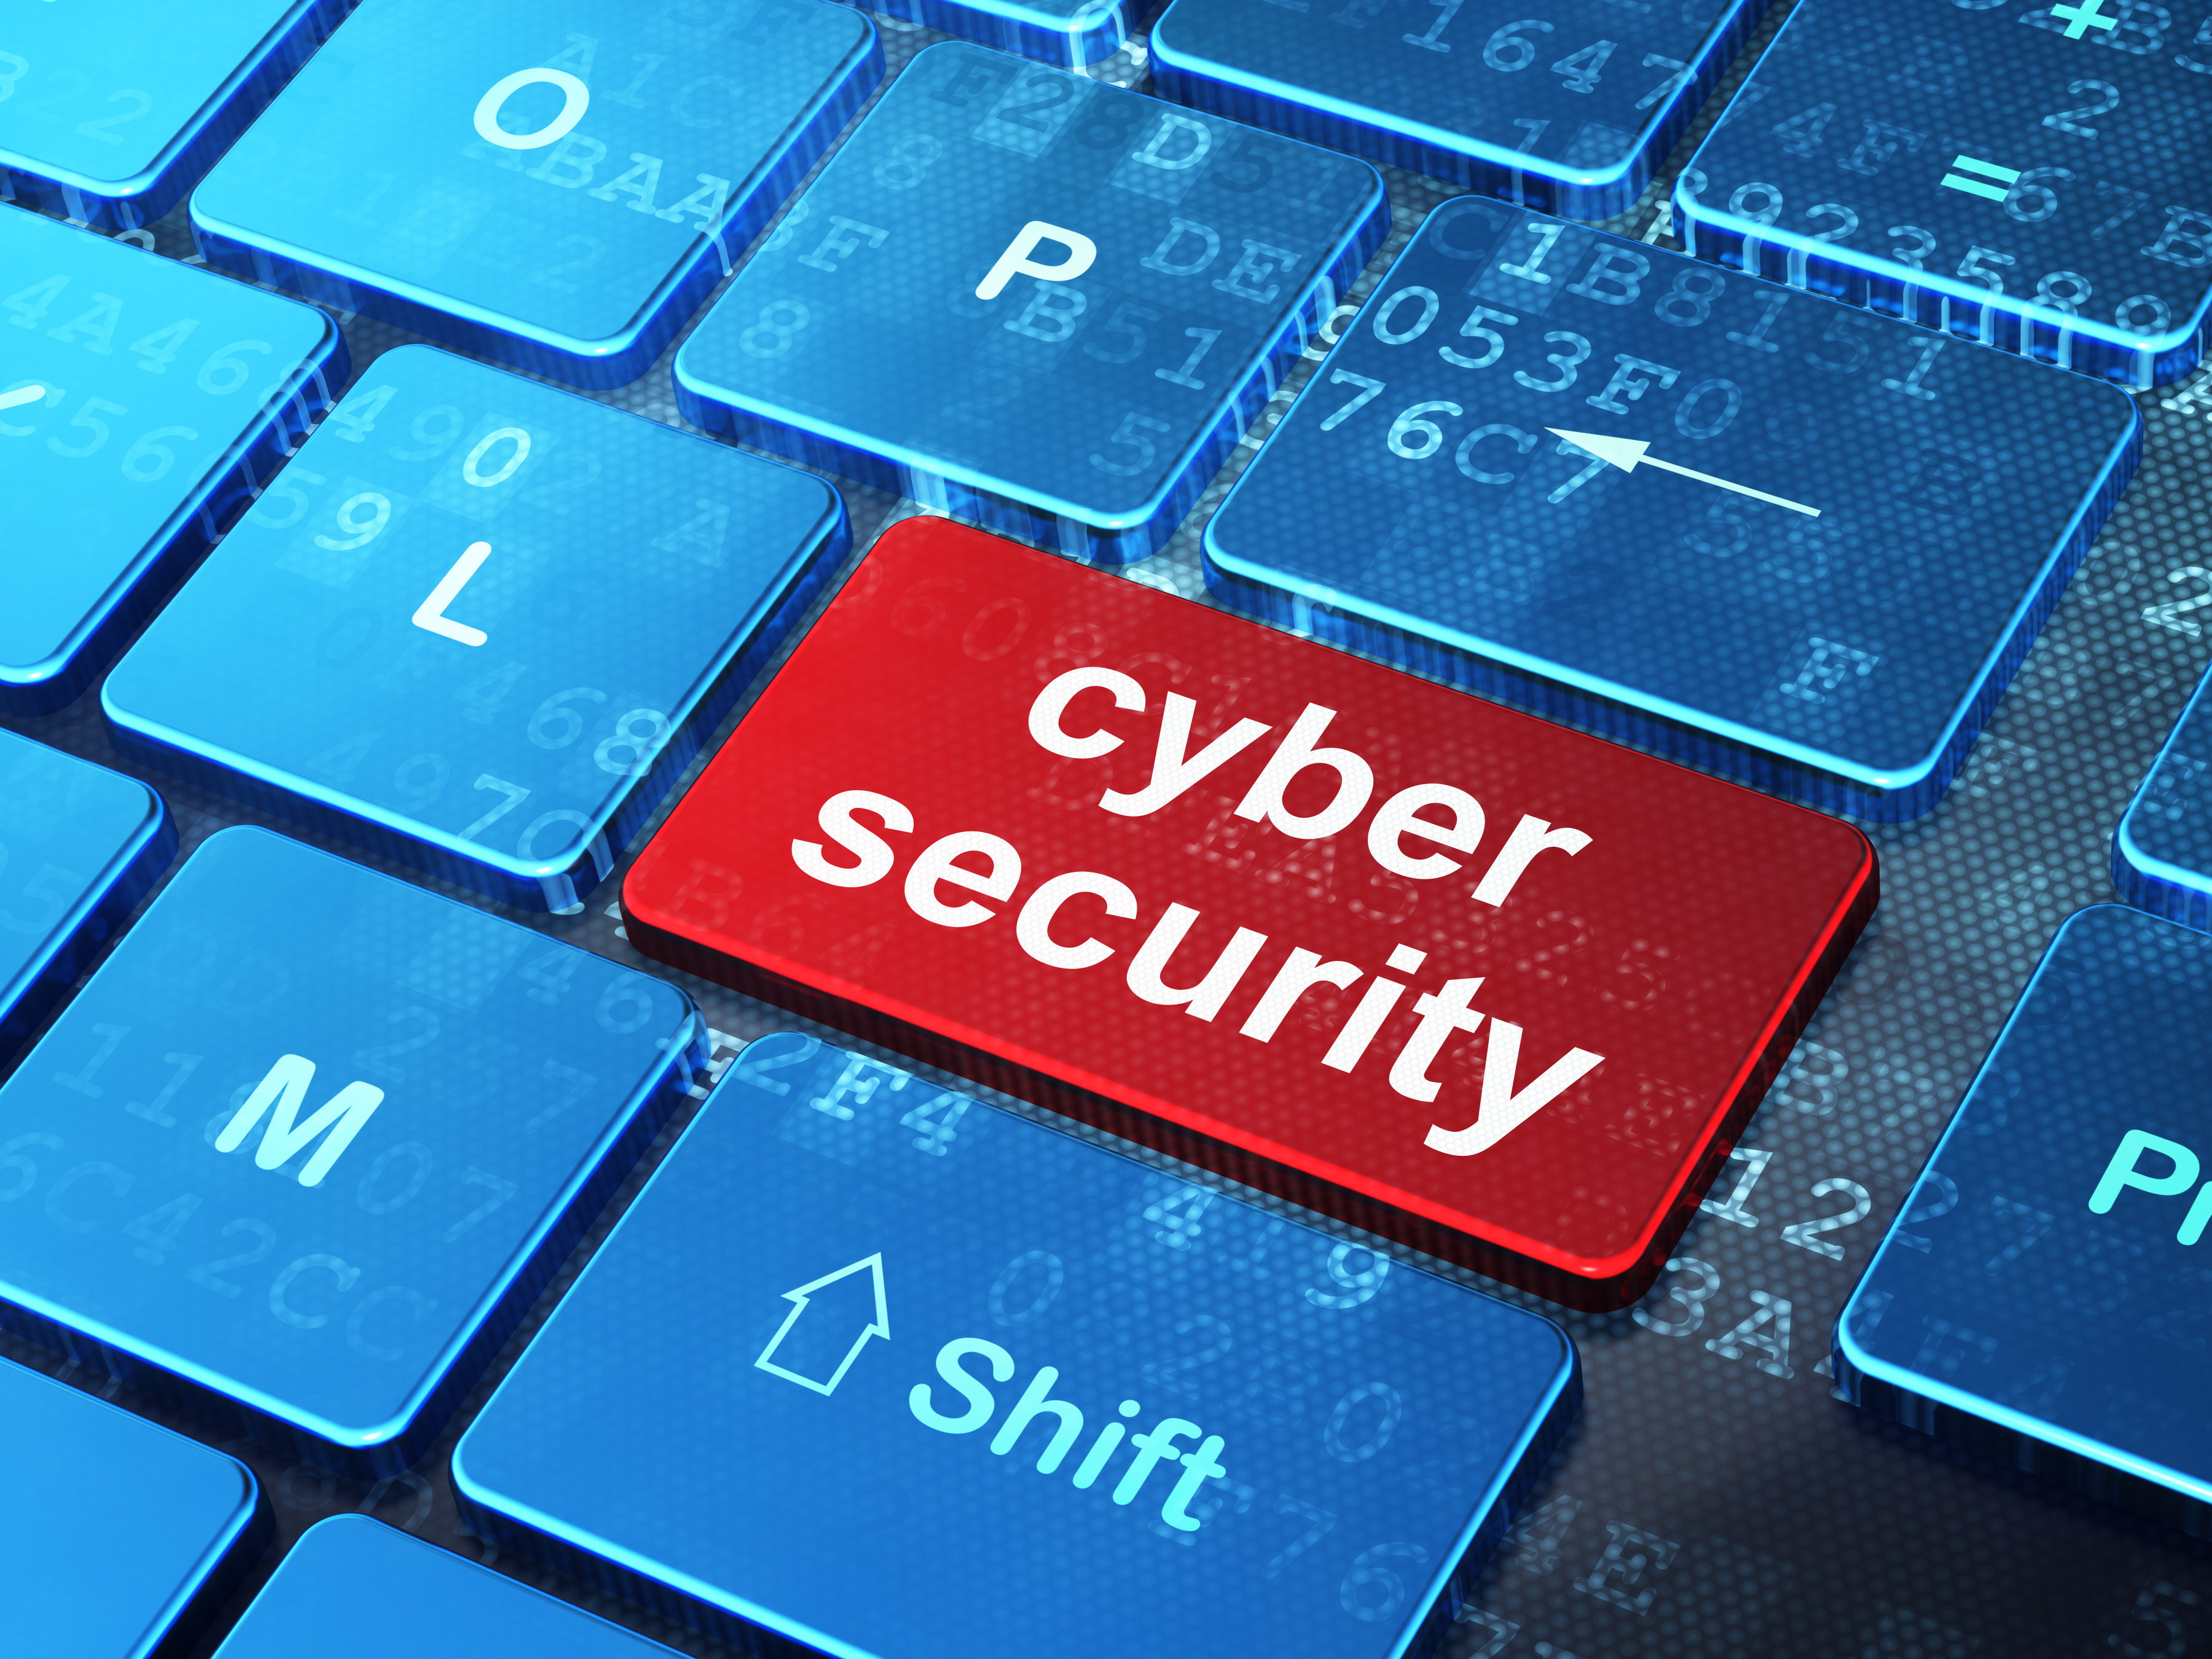 Cyber security 10 unique tips for your small to medium sized although larger enterprises have more data to steal small businesses have less secure networks making it easier to hack into the network and take personal reheart Image collections